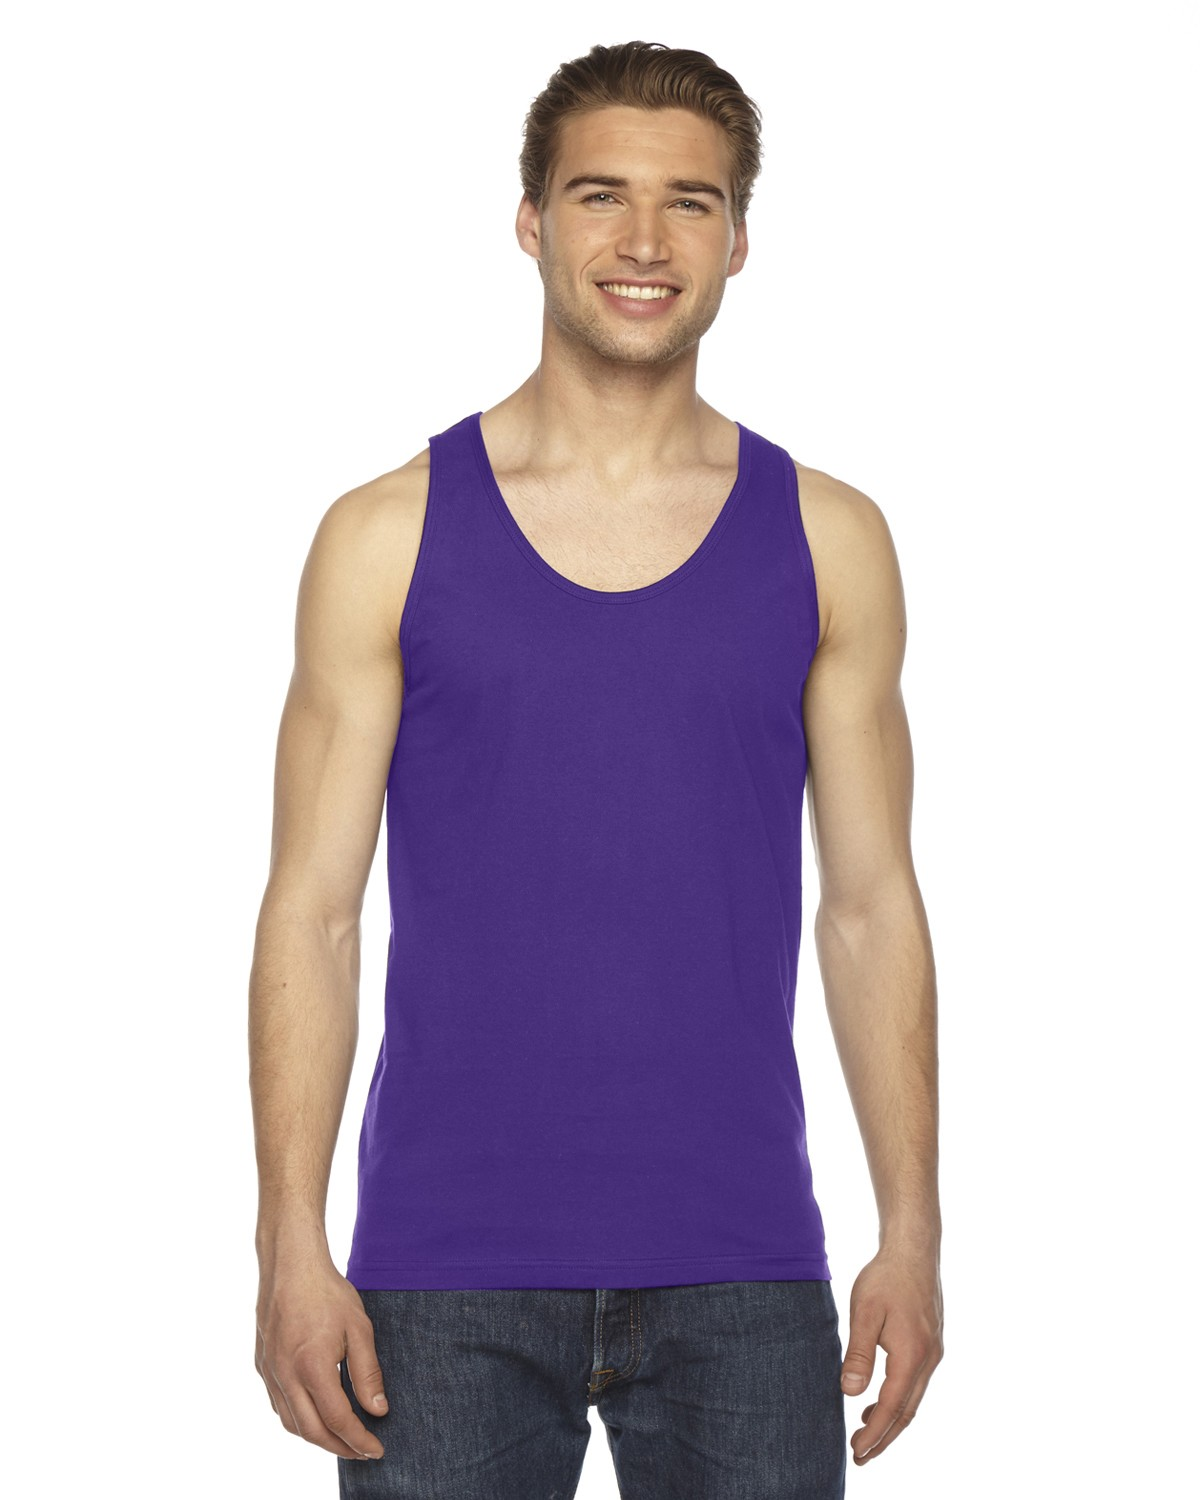 2408W American Apparel PURPLE